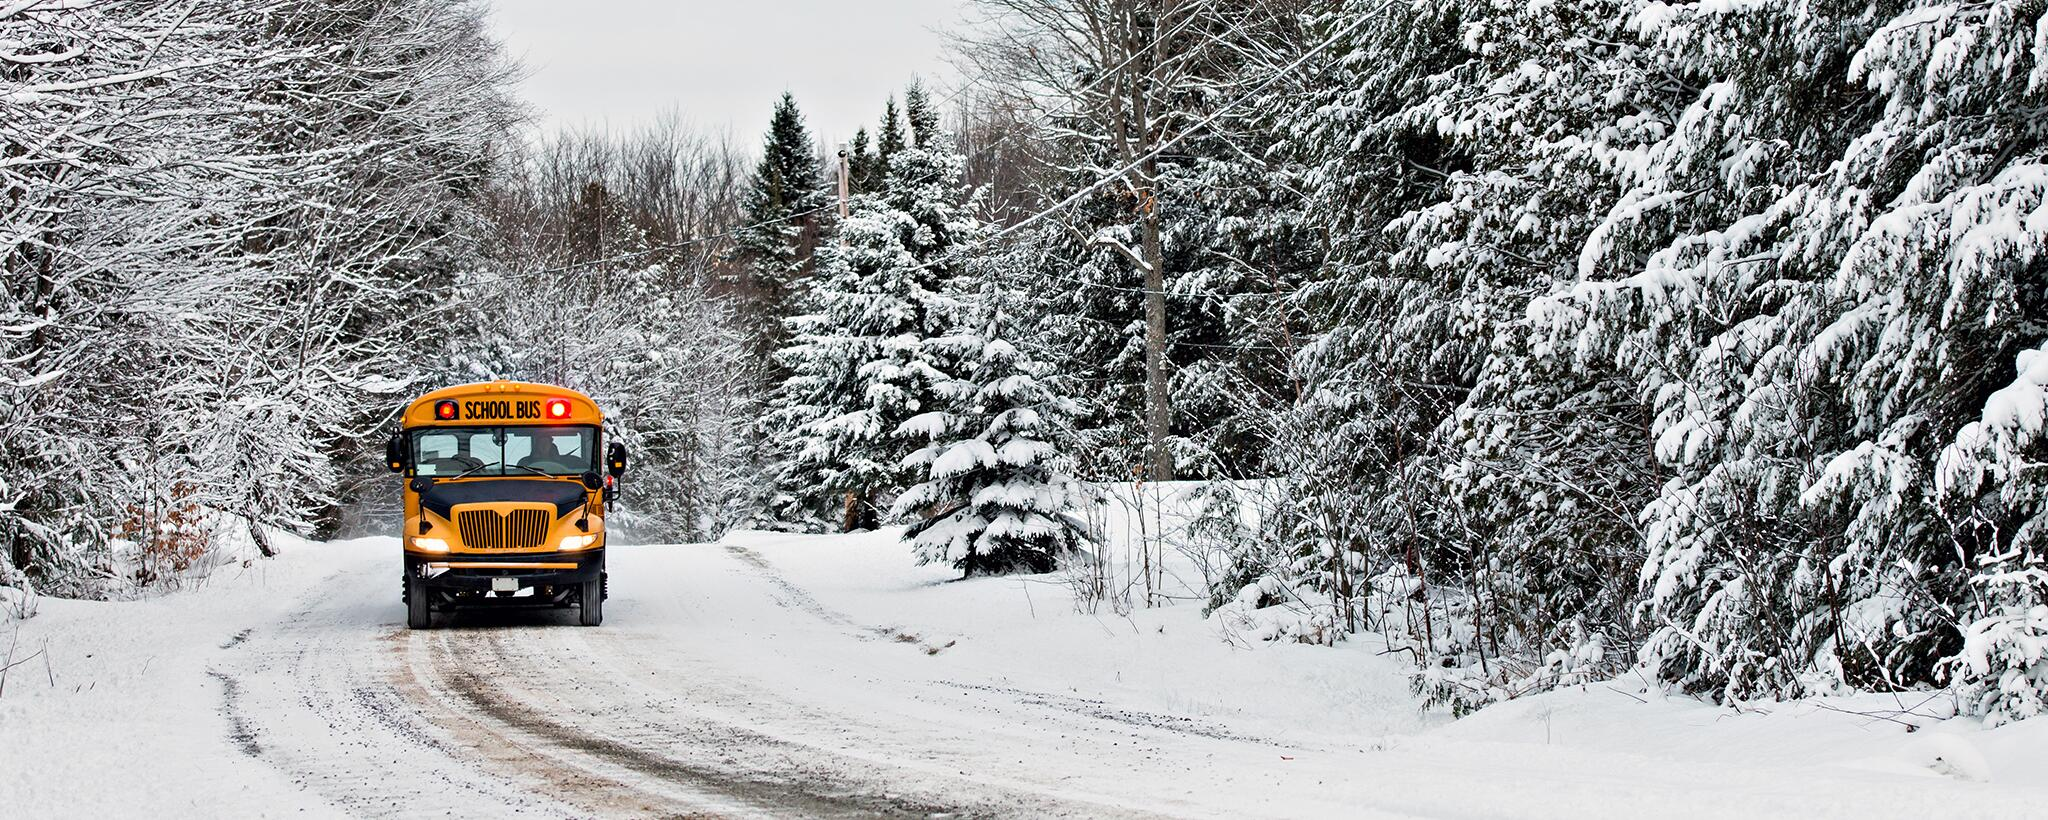 a school bus approaching on a snowy road surrounded by snow covered trees.